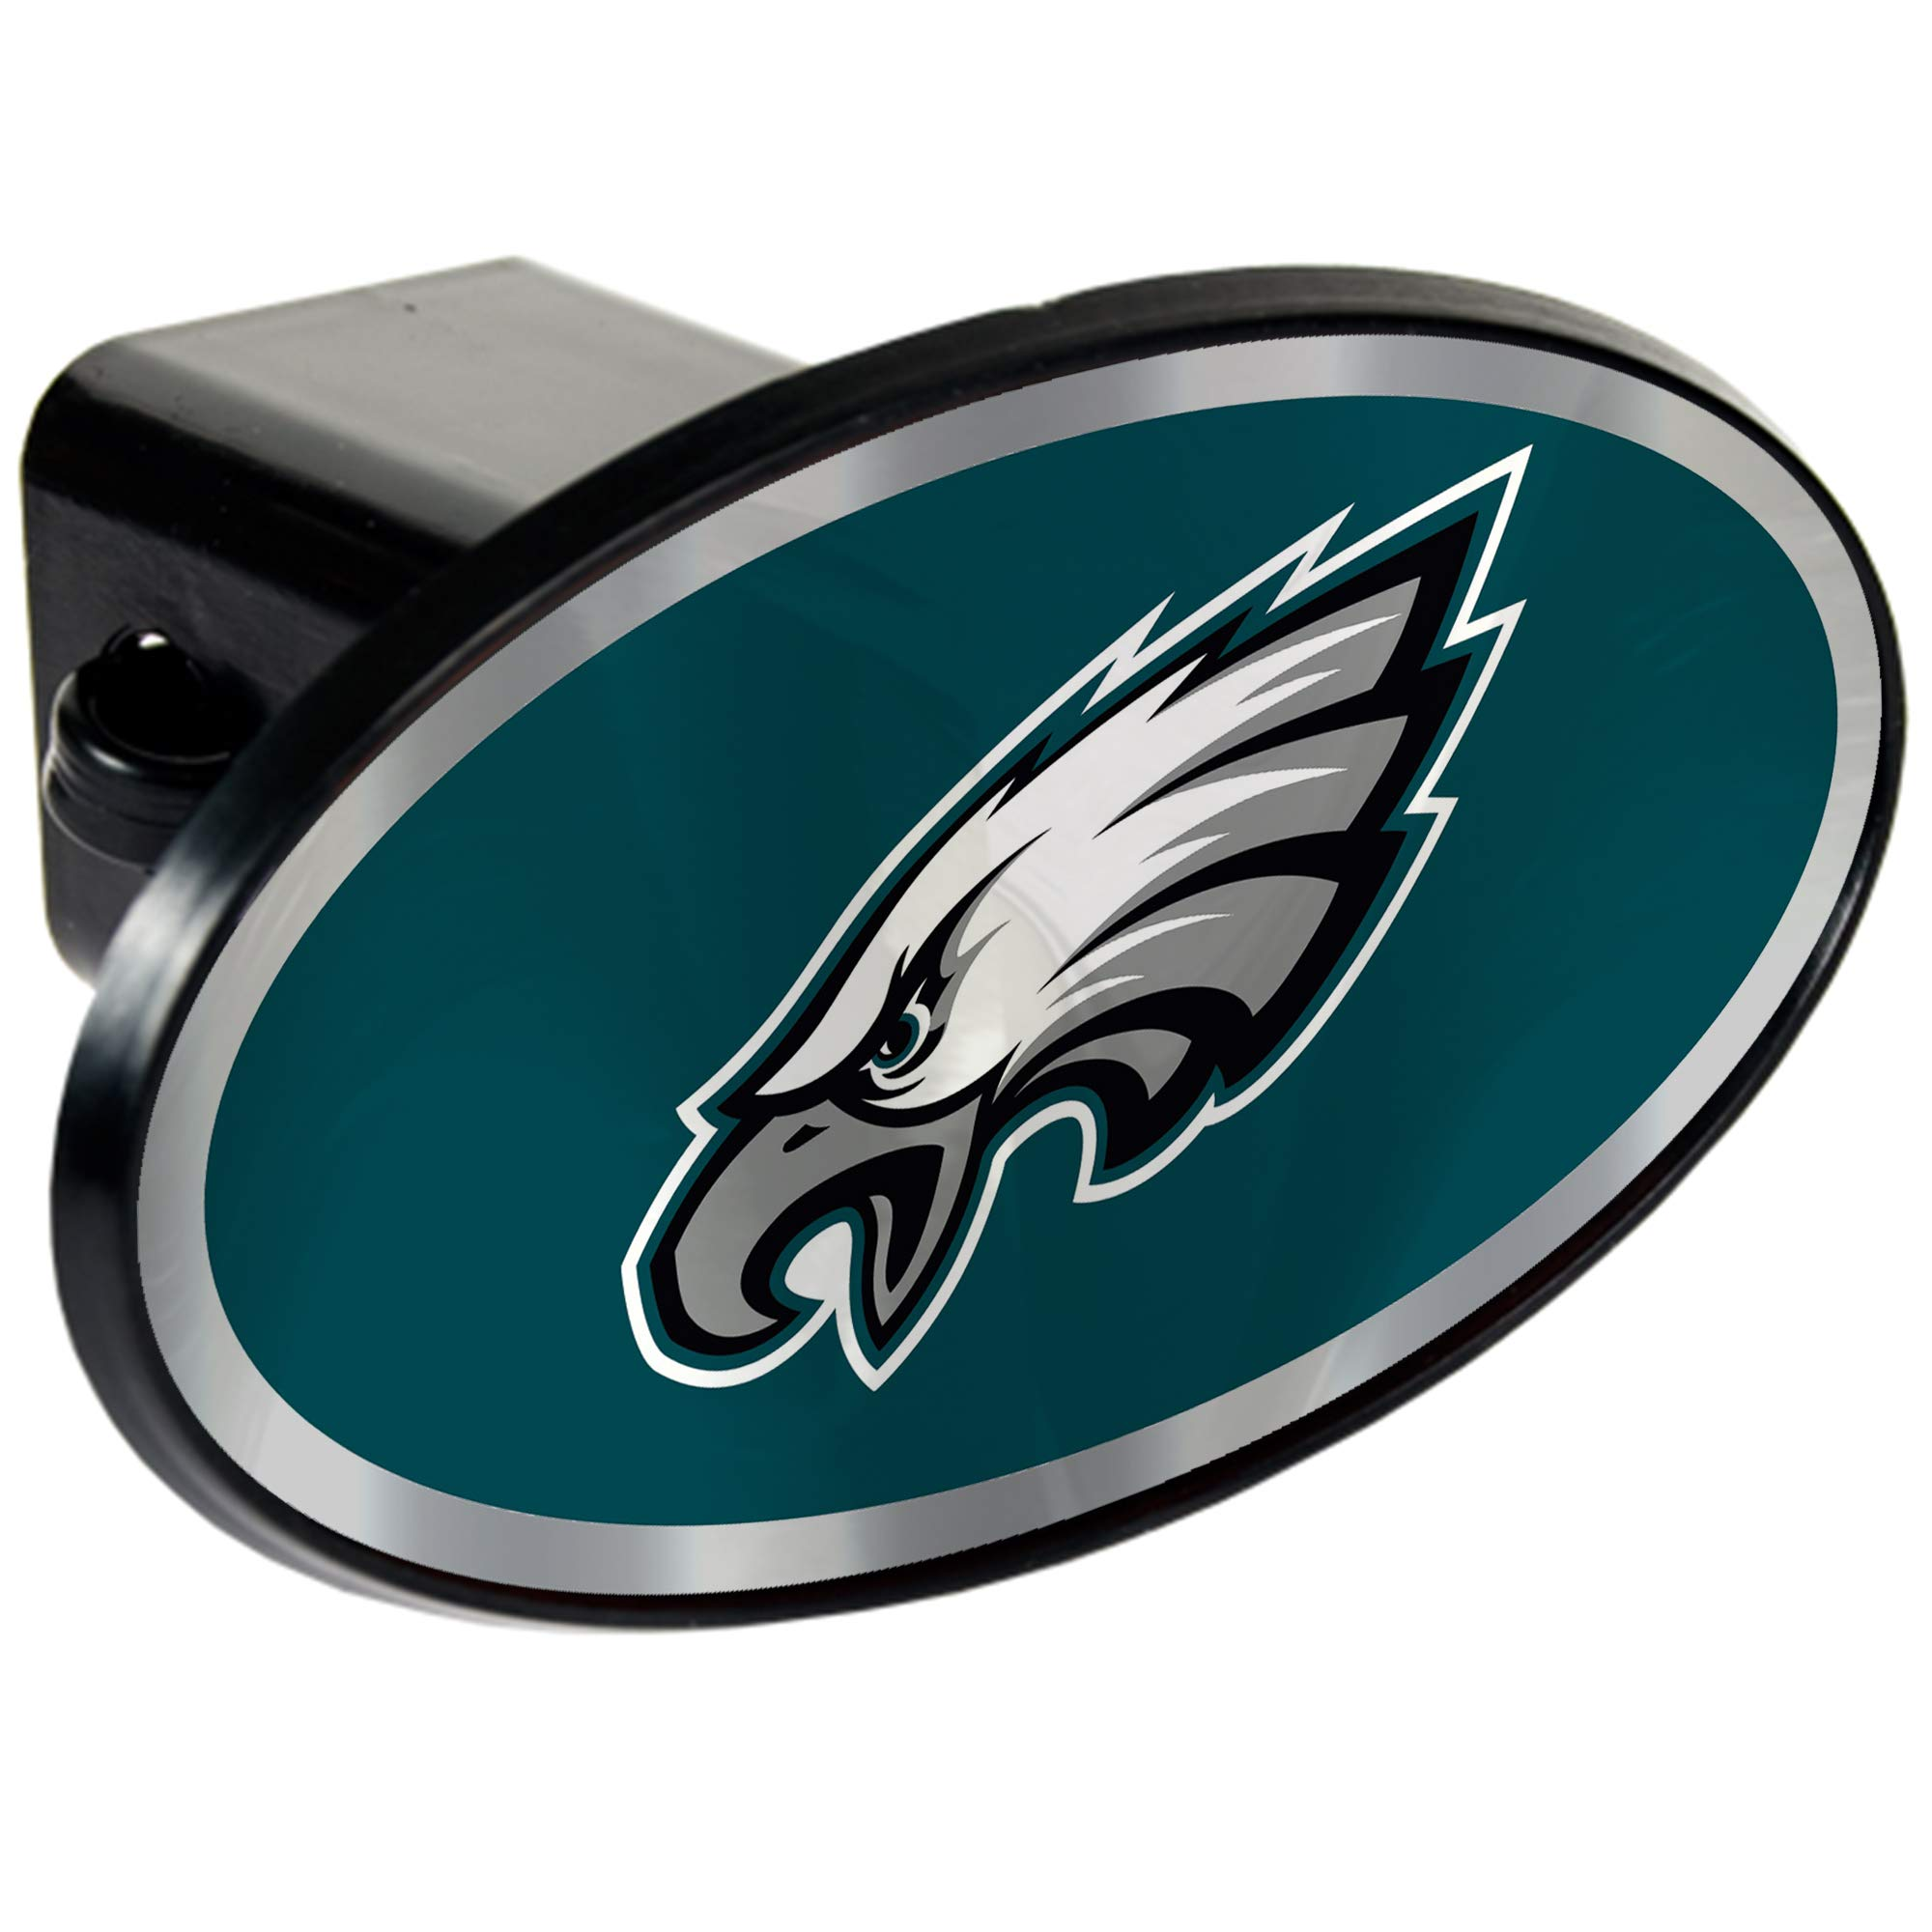 NFL Philadelphia Eagles Tow Hitch Cover Plug w/pin for Car-Truck-SUV 2'' Receiver by Quality Hitch Covers